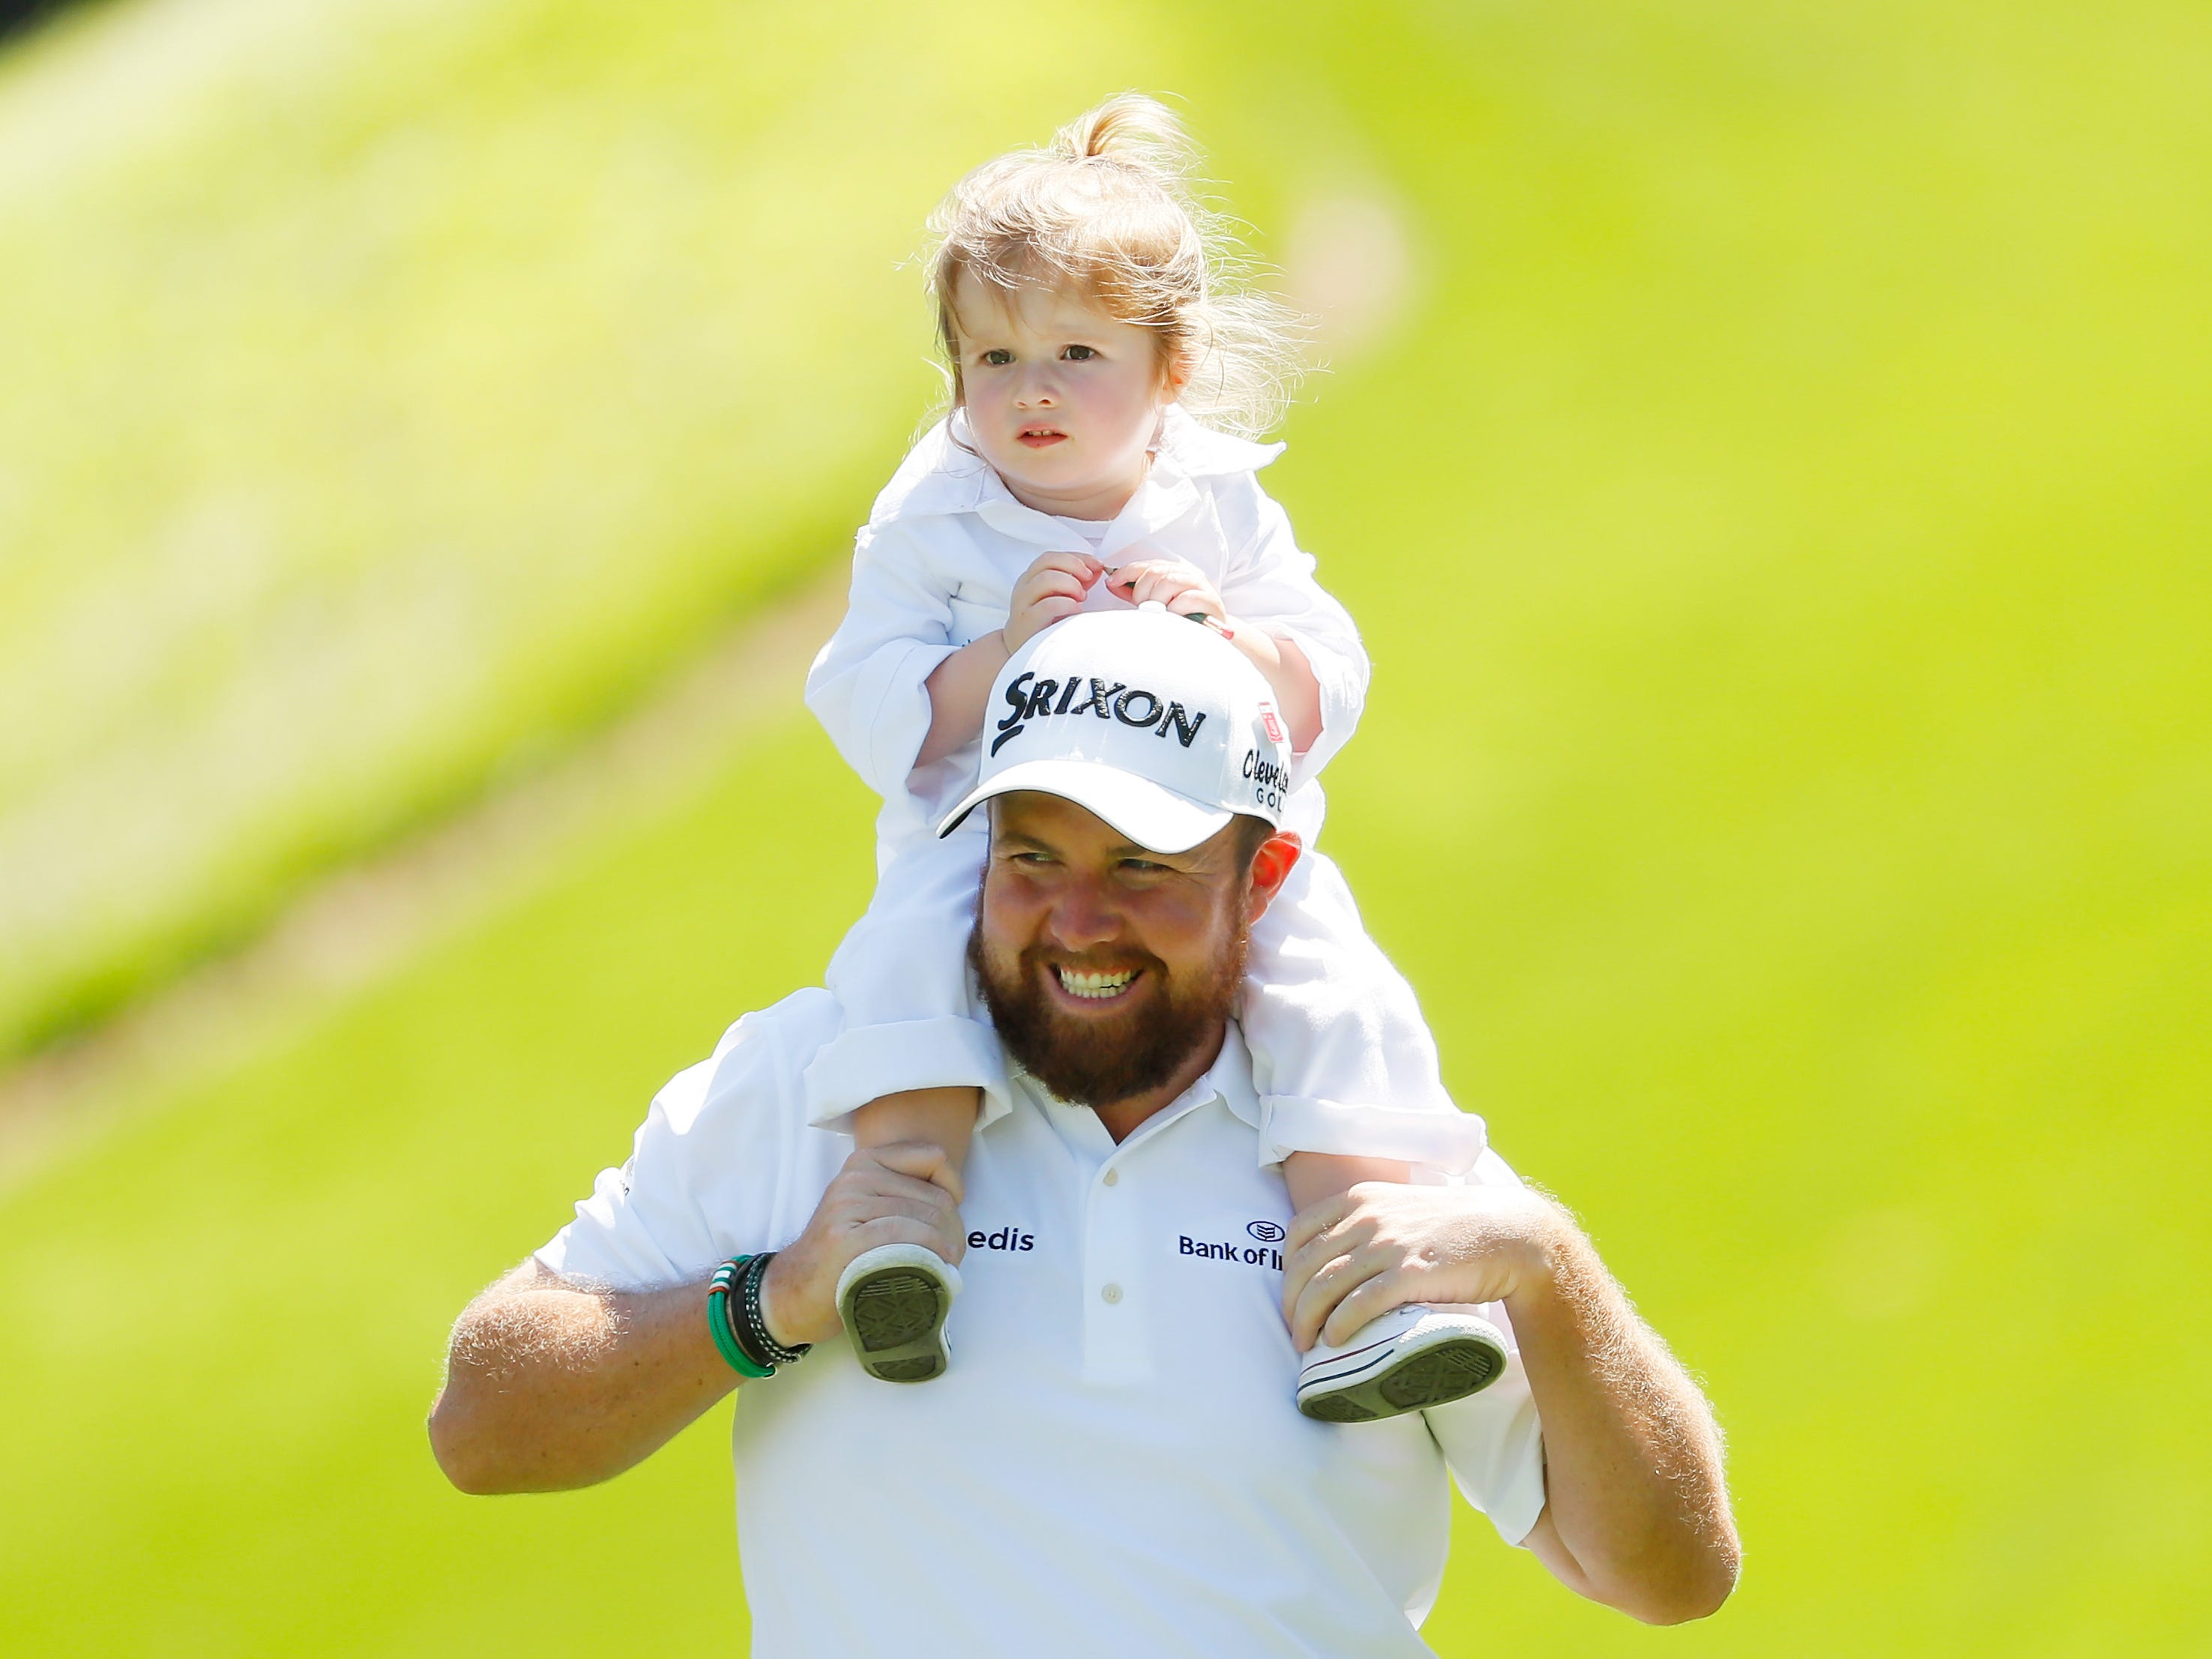 Shane Lowry carries his daughter Iris.